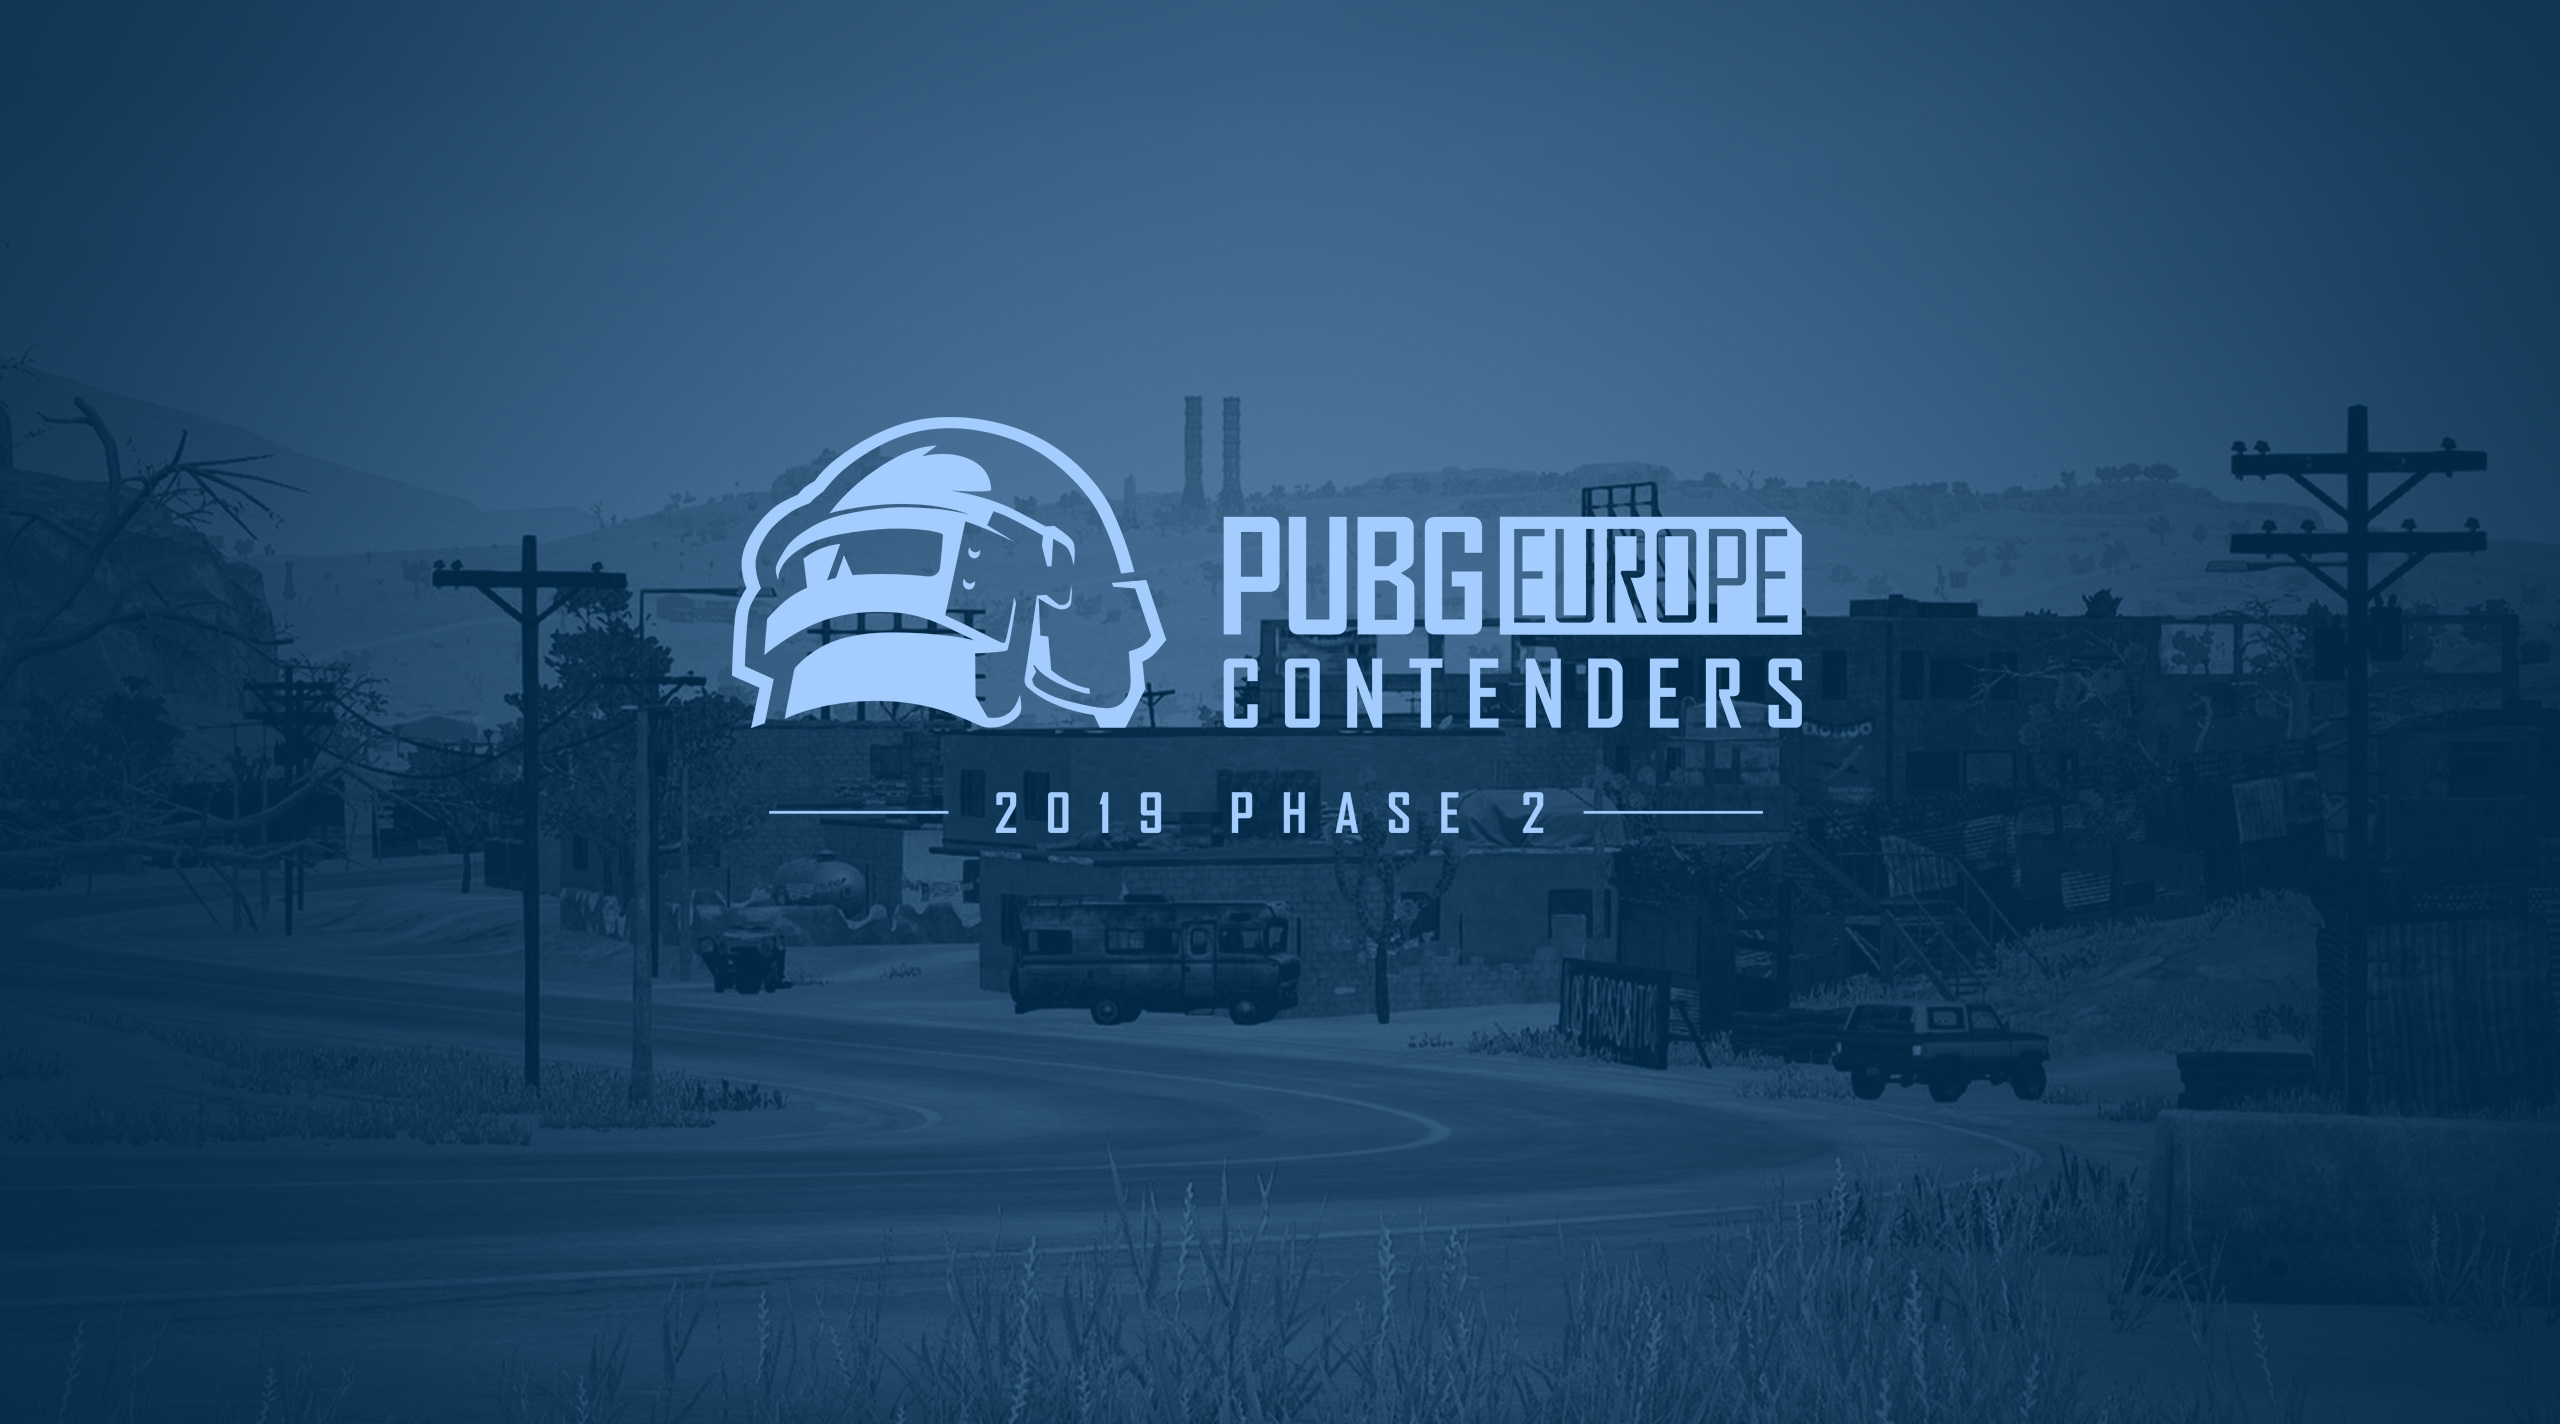 PEL Contenders Phase 2 starts May 13